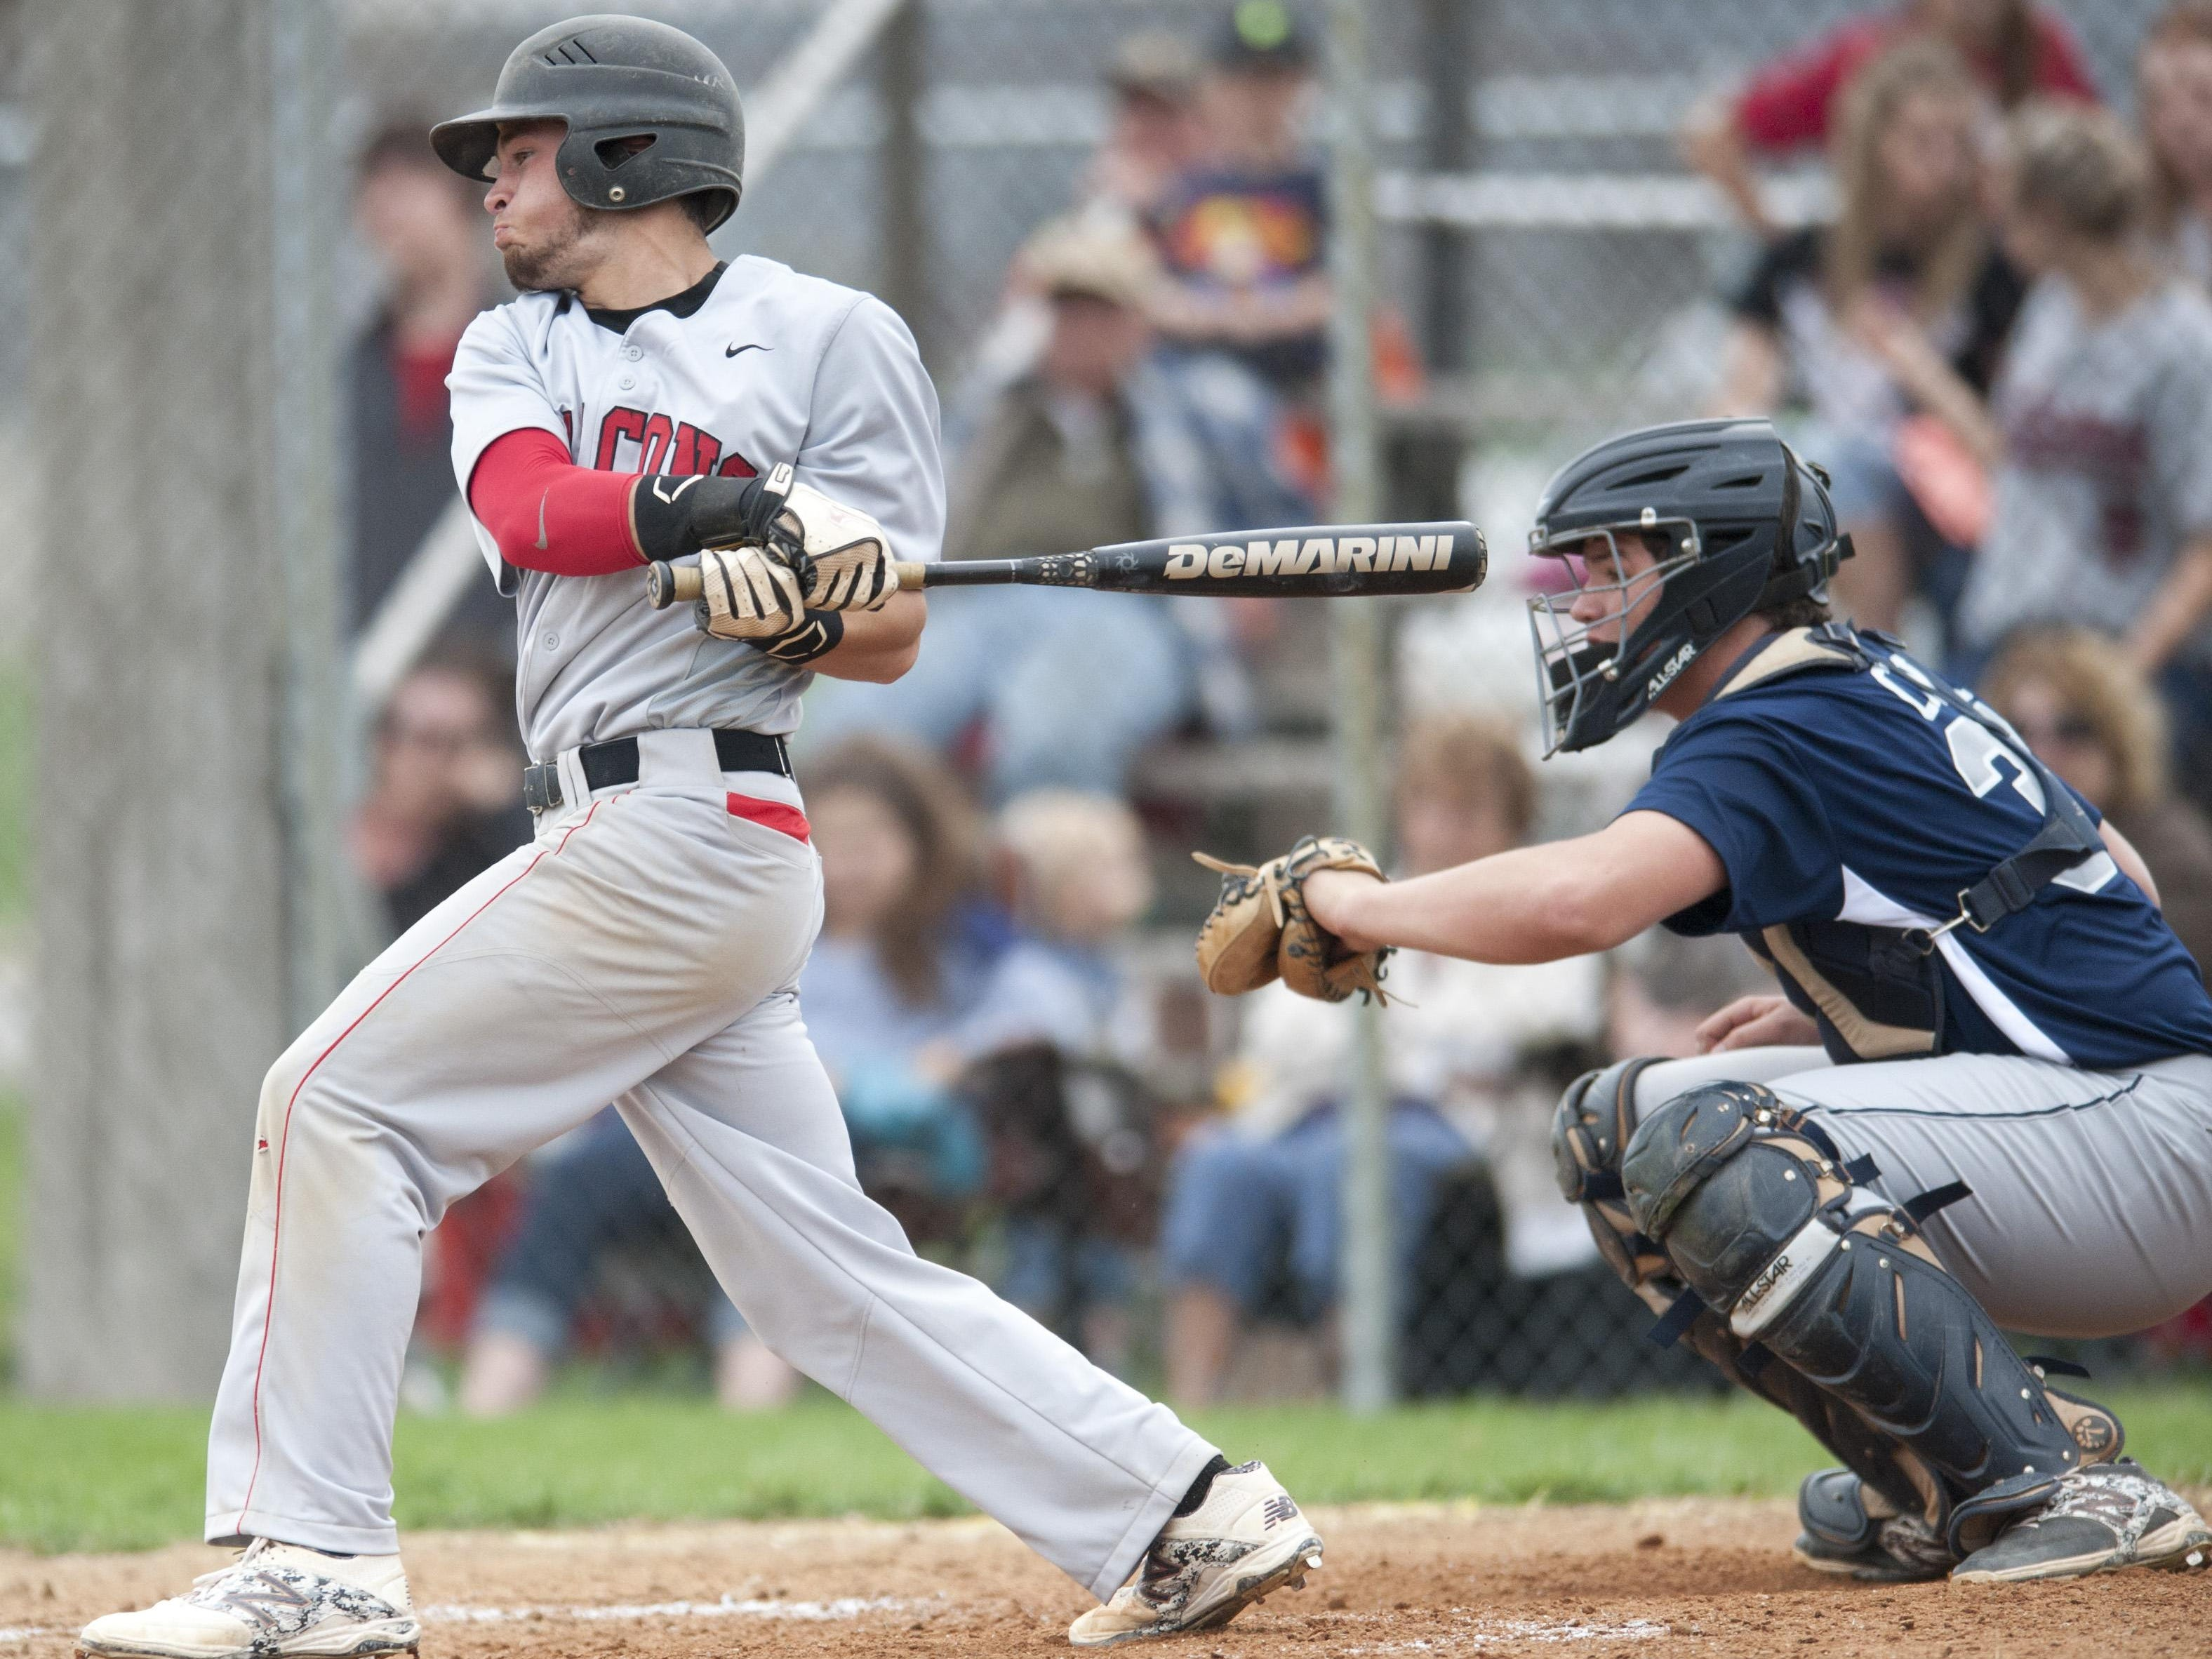 Baseball - CC at Frontier. Brandon Gallinger reaches base as result of error by shortstop.